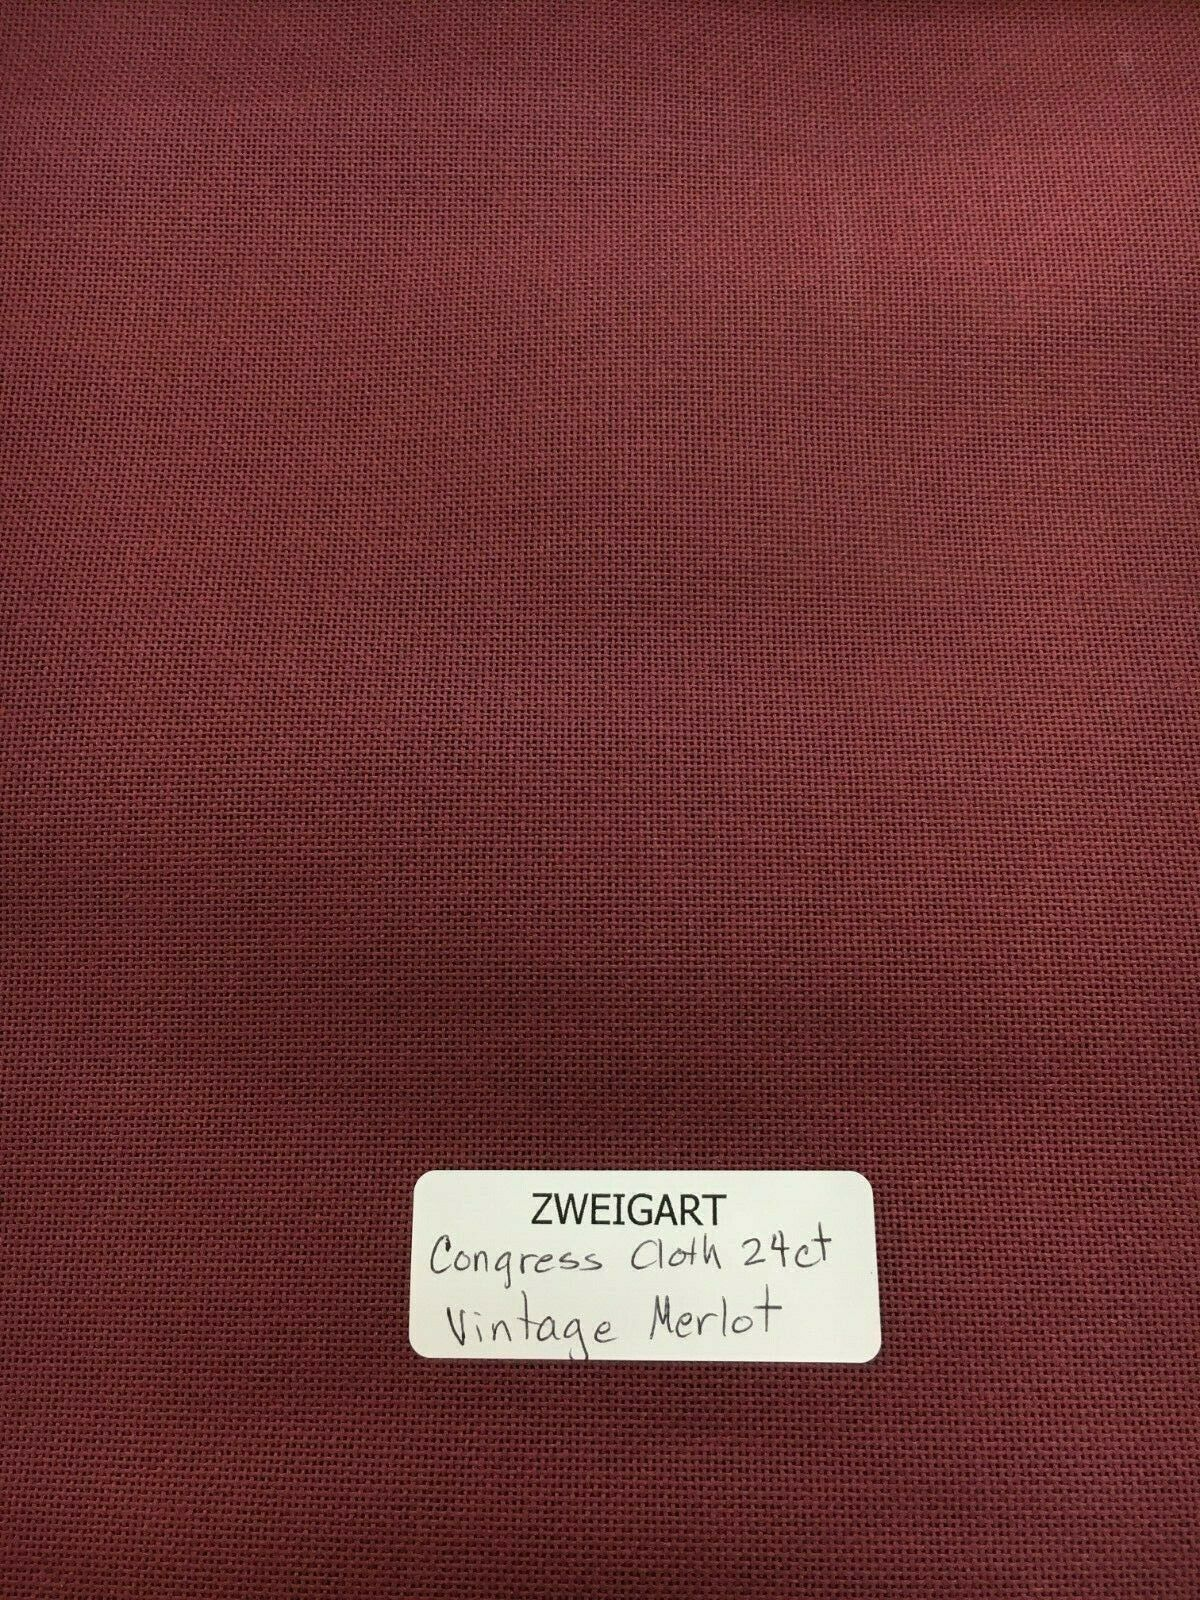 Primary image for Zweigart Congress Cloth Blank 24 Mesh Needlepoint Canvas Vintage Merlot